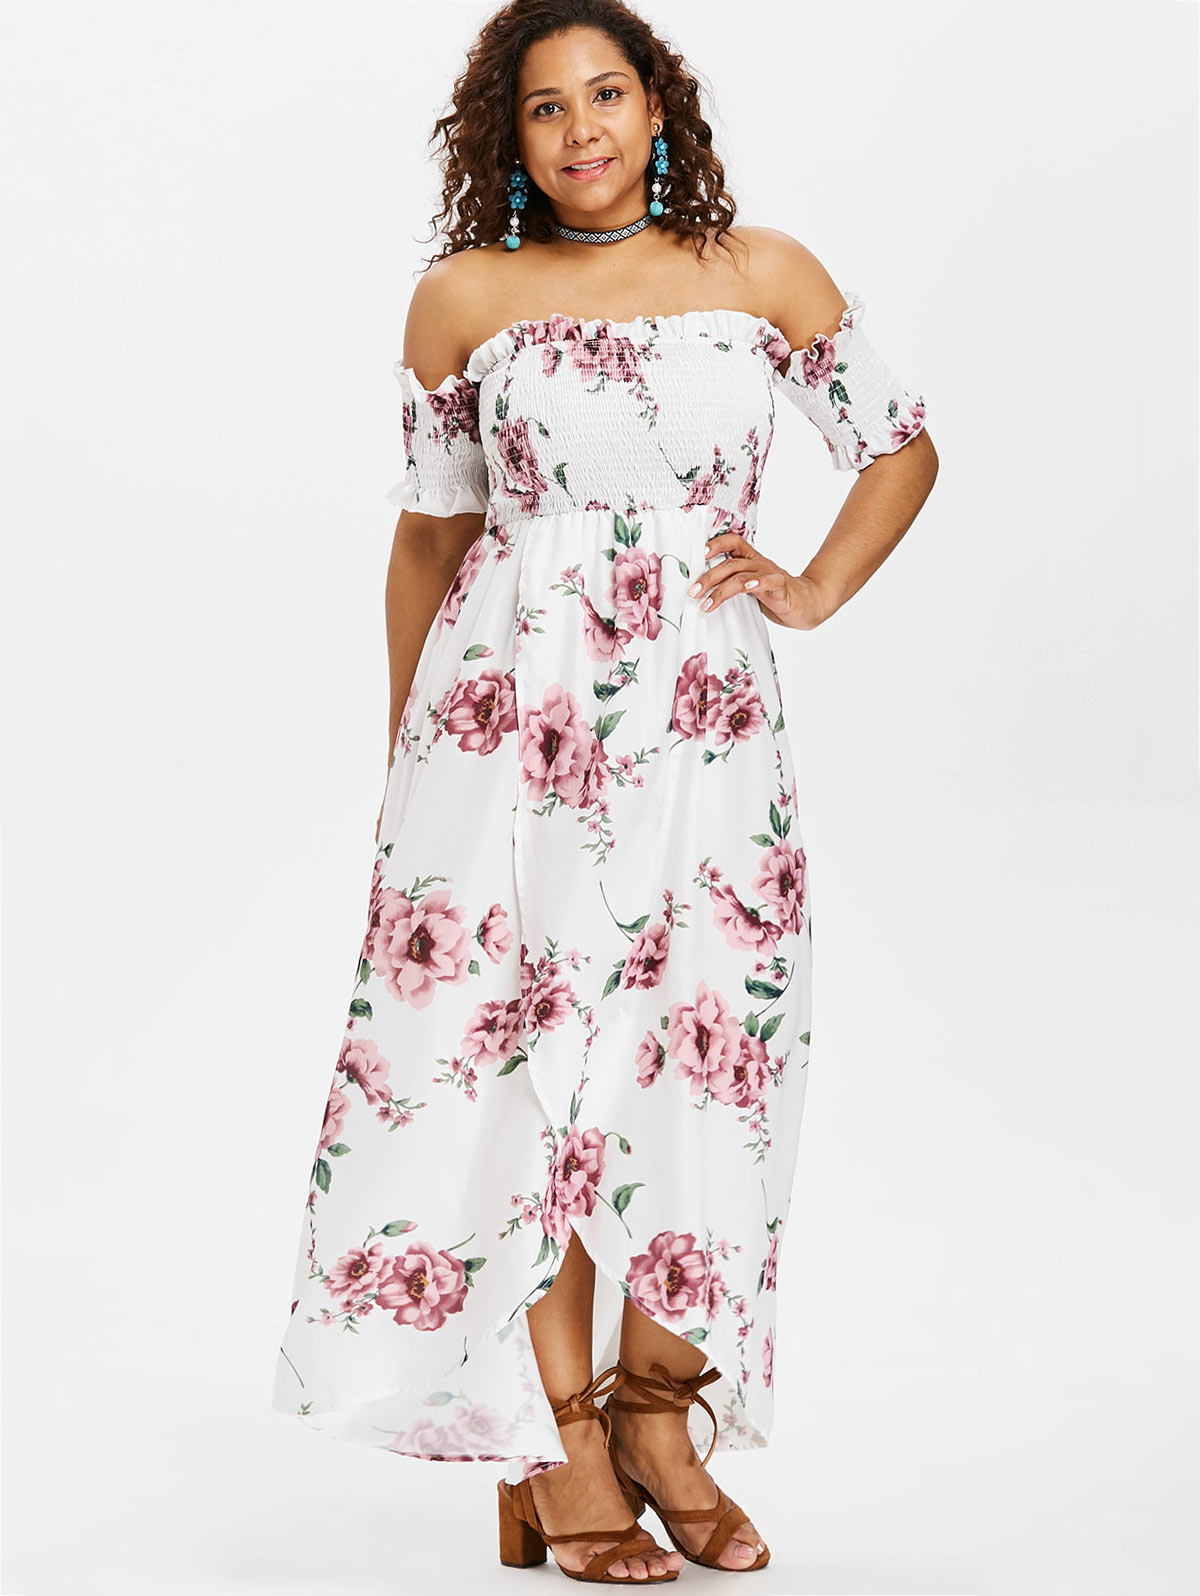 6ce50093b7020 Detail Feedback Questions about Wipalo Plus Size Floral Print Off Shoulder  Dress High Waist Asymmetrical Short Sleeves Shirred Long Dress Casual Maxi  ...